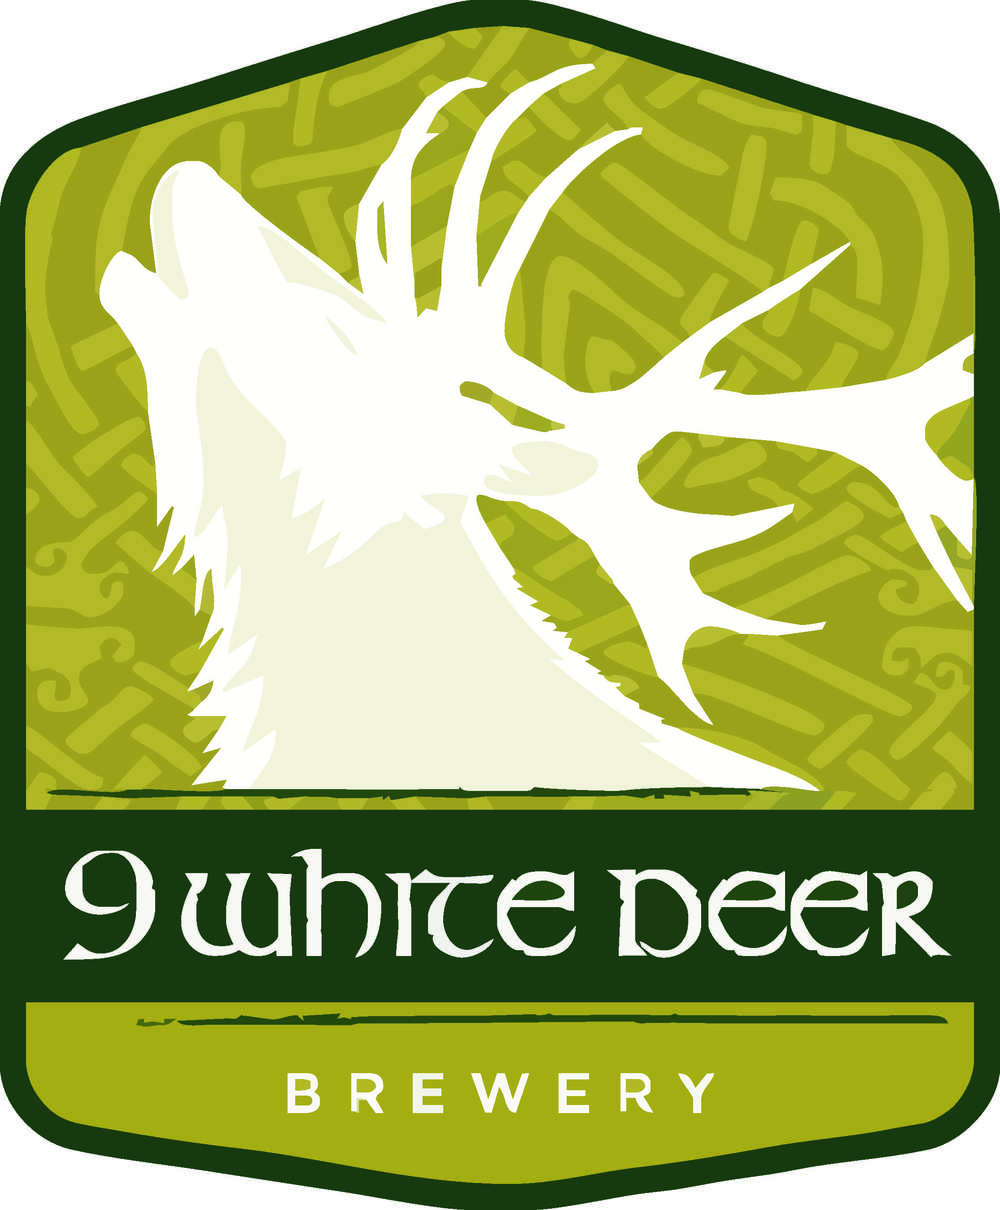 9 White Deer Brewery